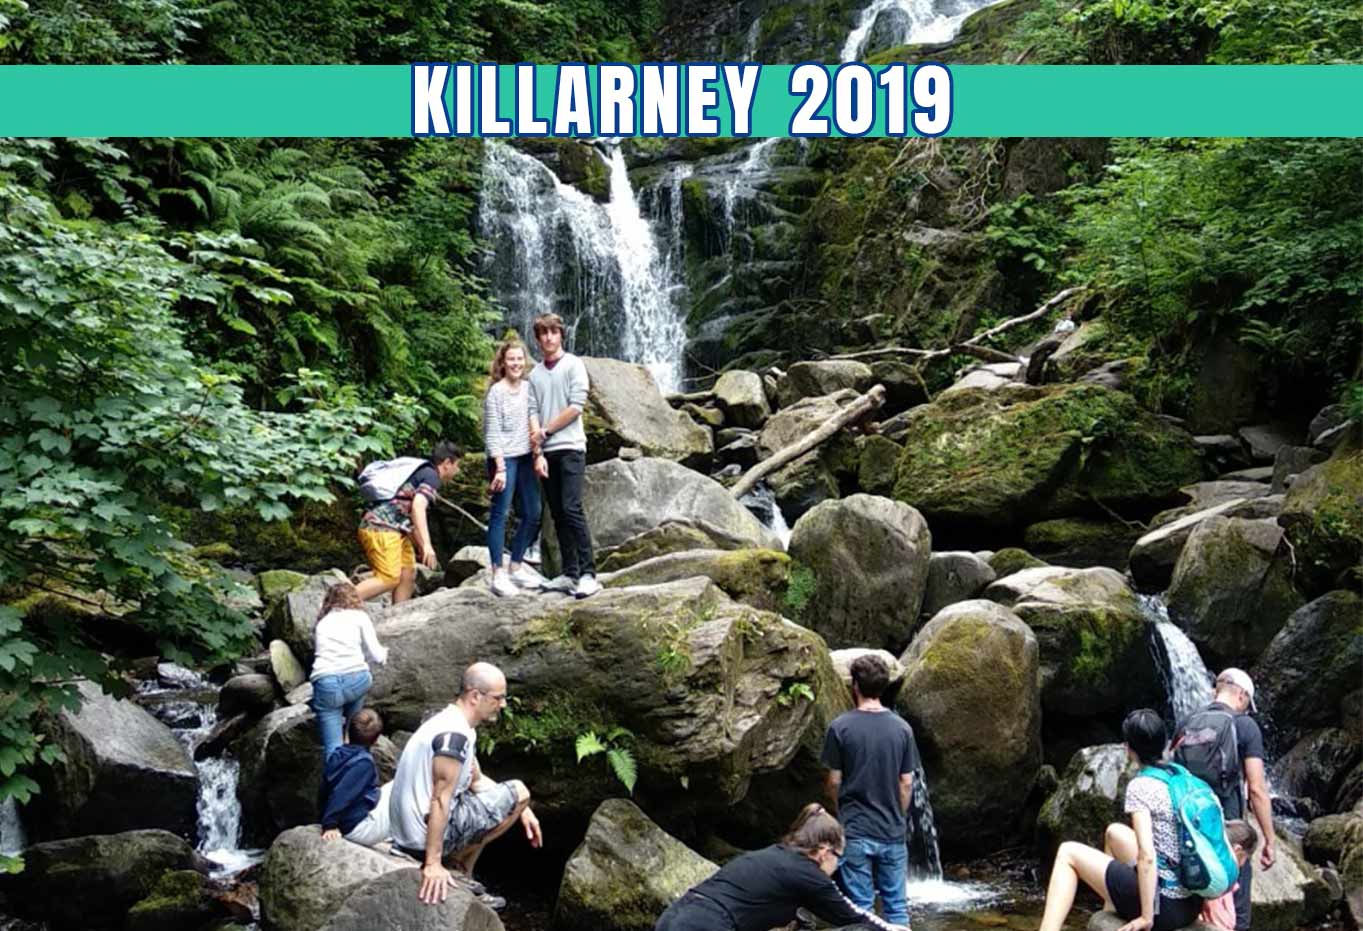 Program Review: KILLARNEY 2019